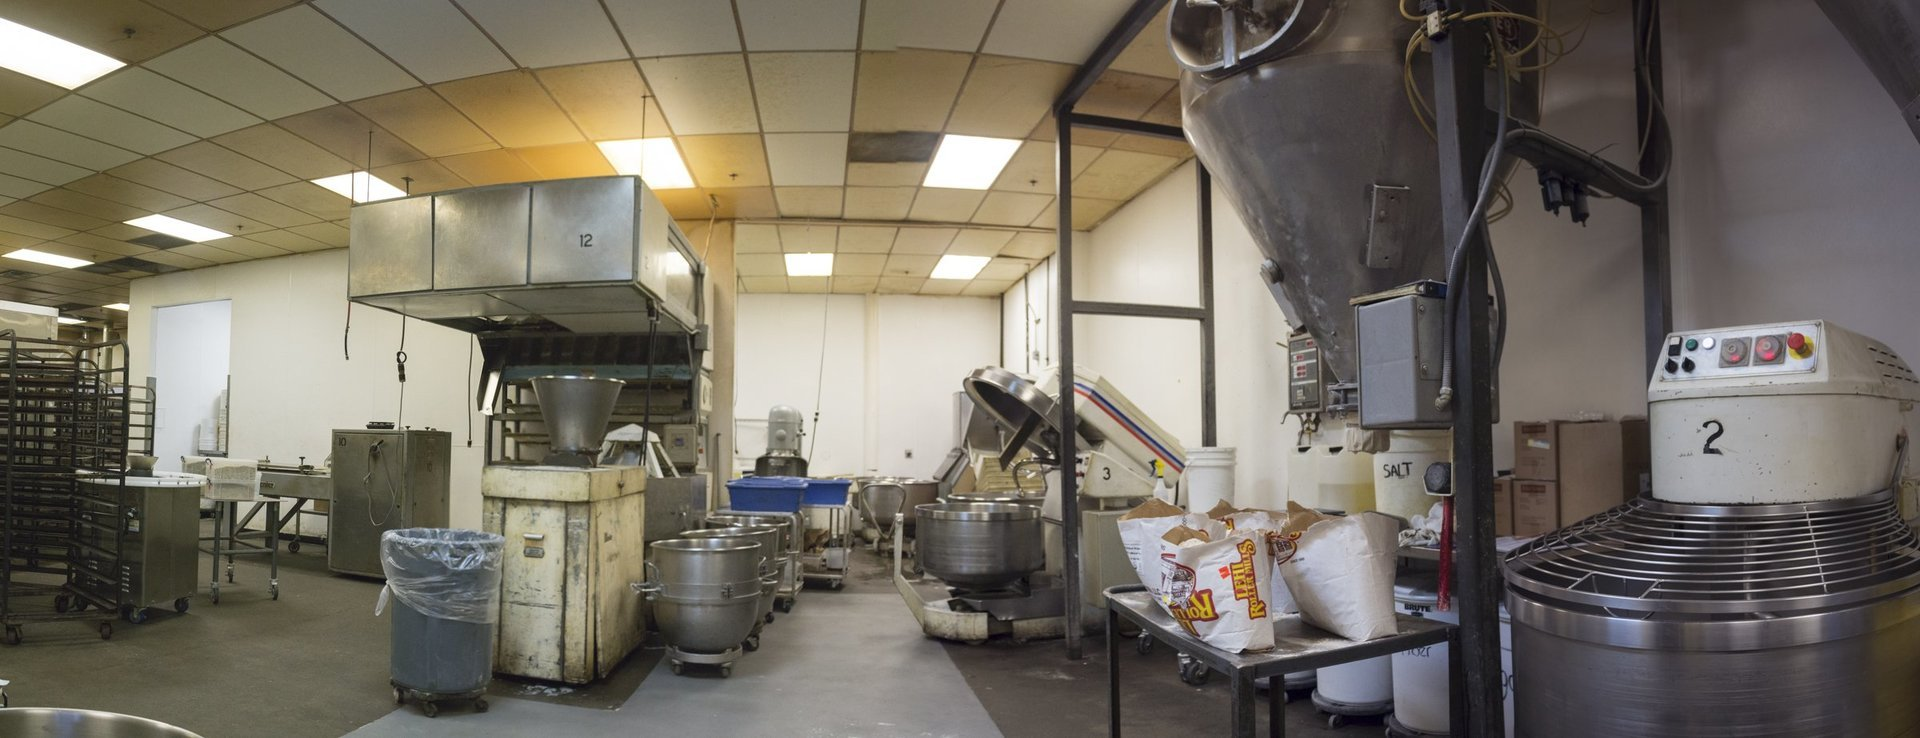 Oasis Breads mixing room of oasis bakery